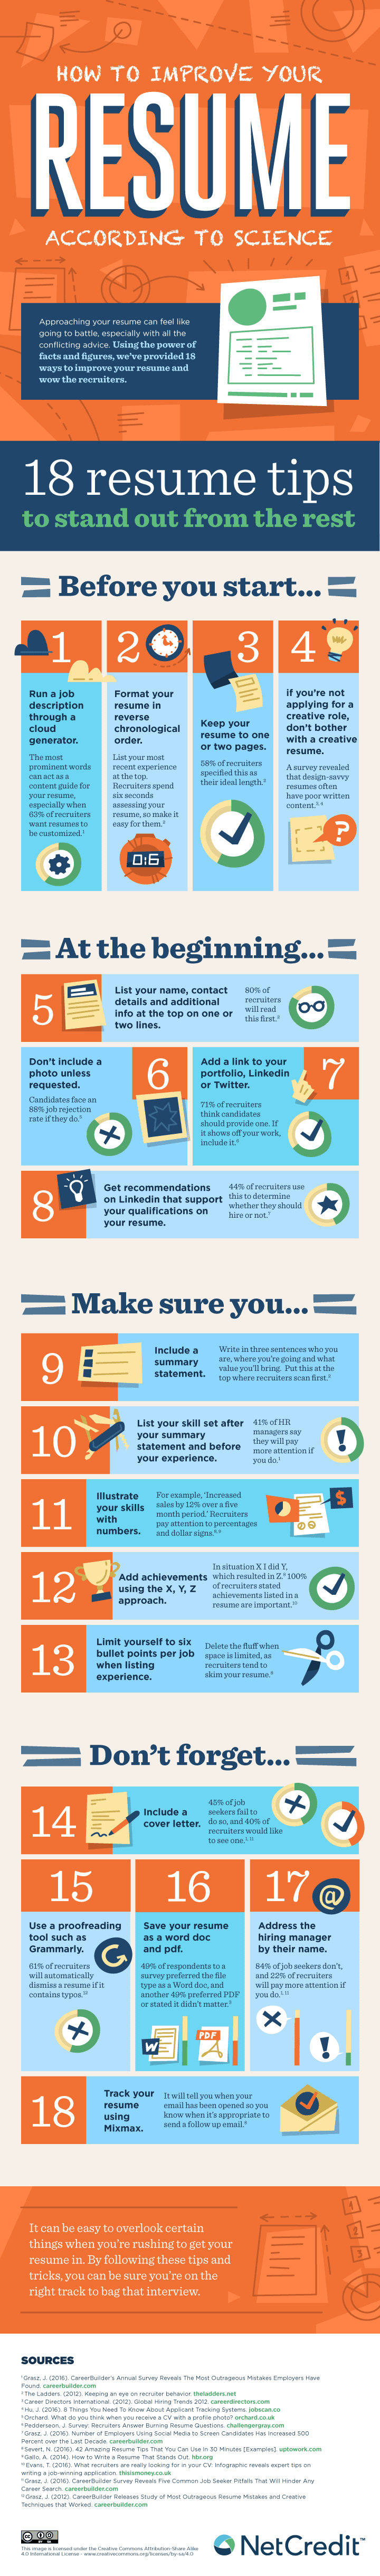 How to Improve Your Resume According to Science - #infographic